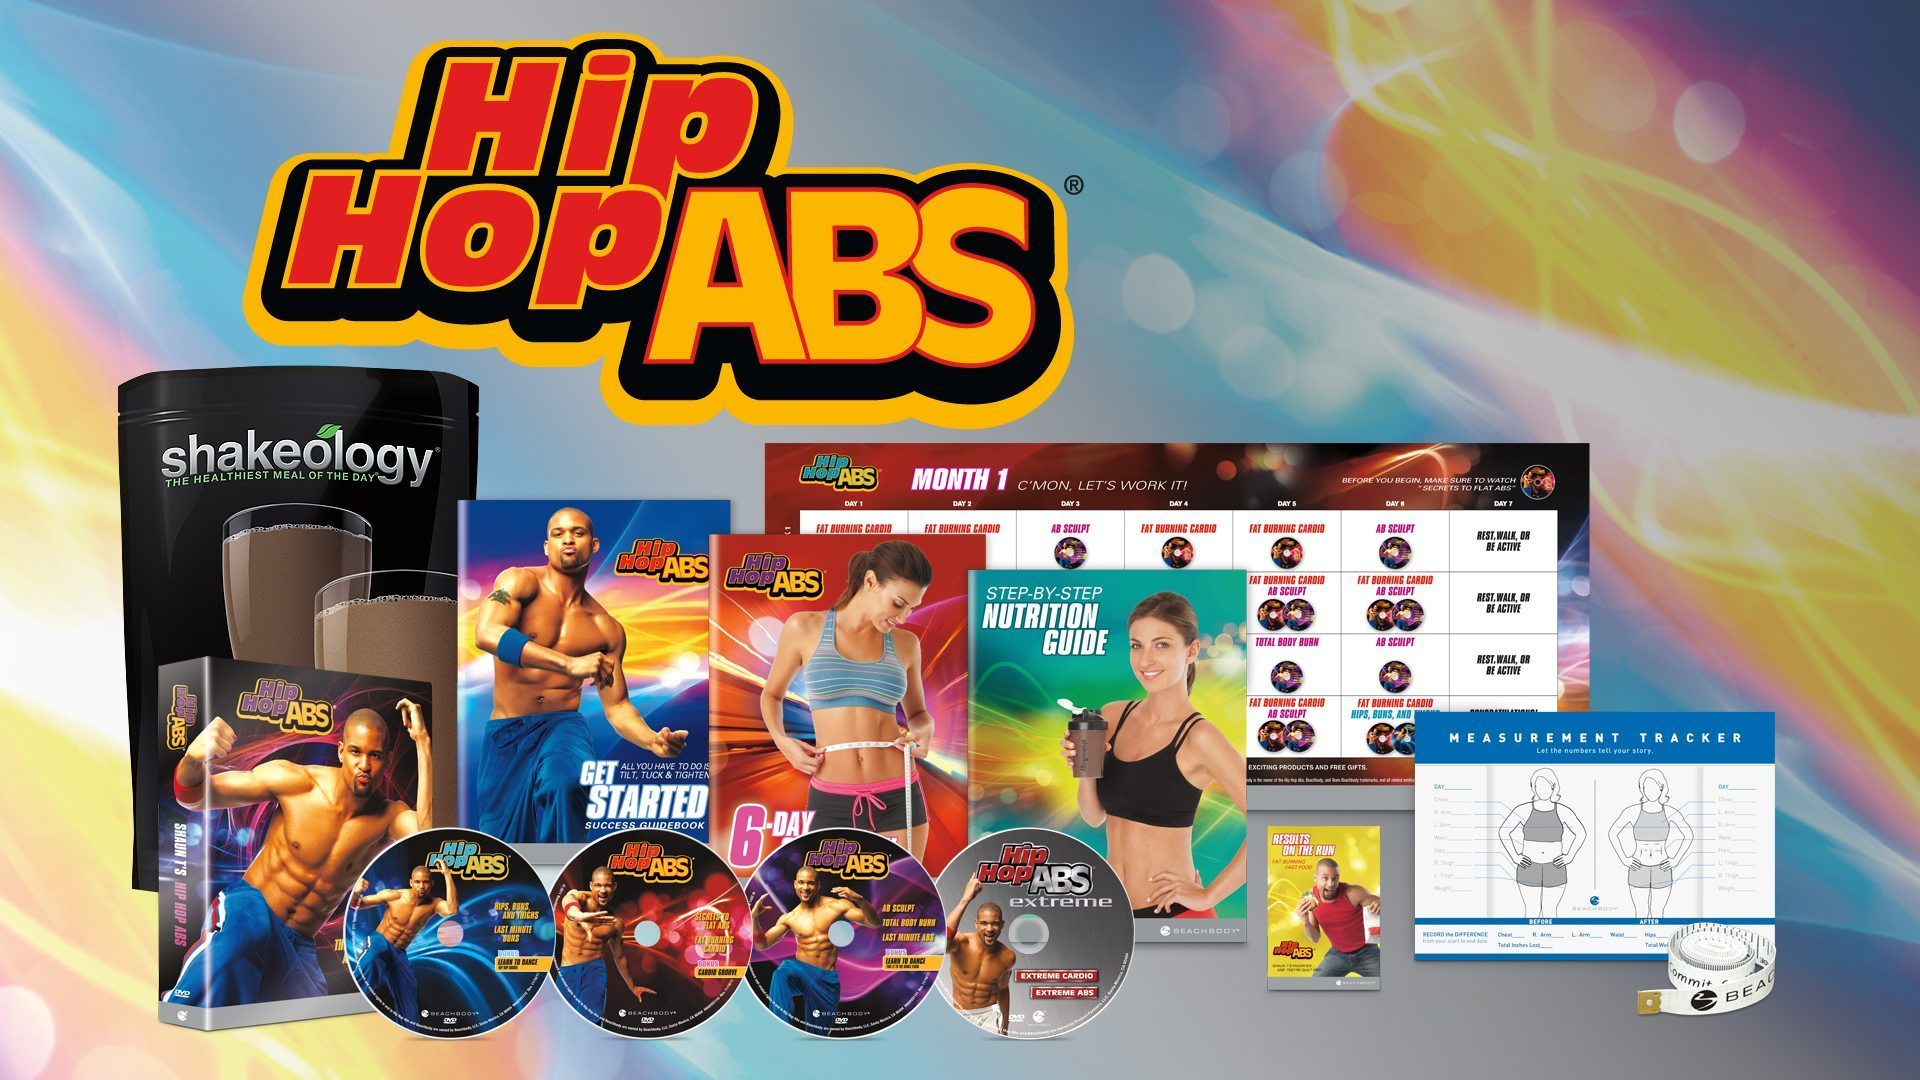 Shaun T And Dr. Oz Team Up Again To Target Your Problem in Hip Hop Abs Month 2